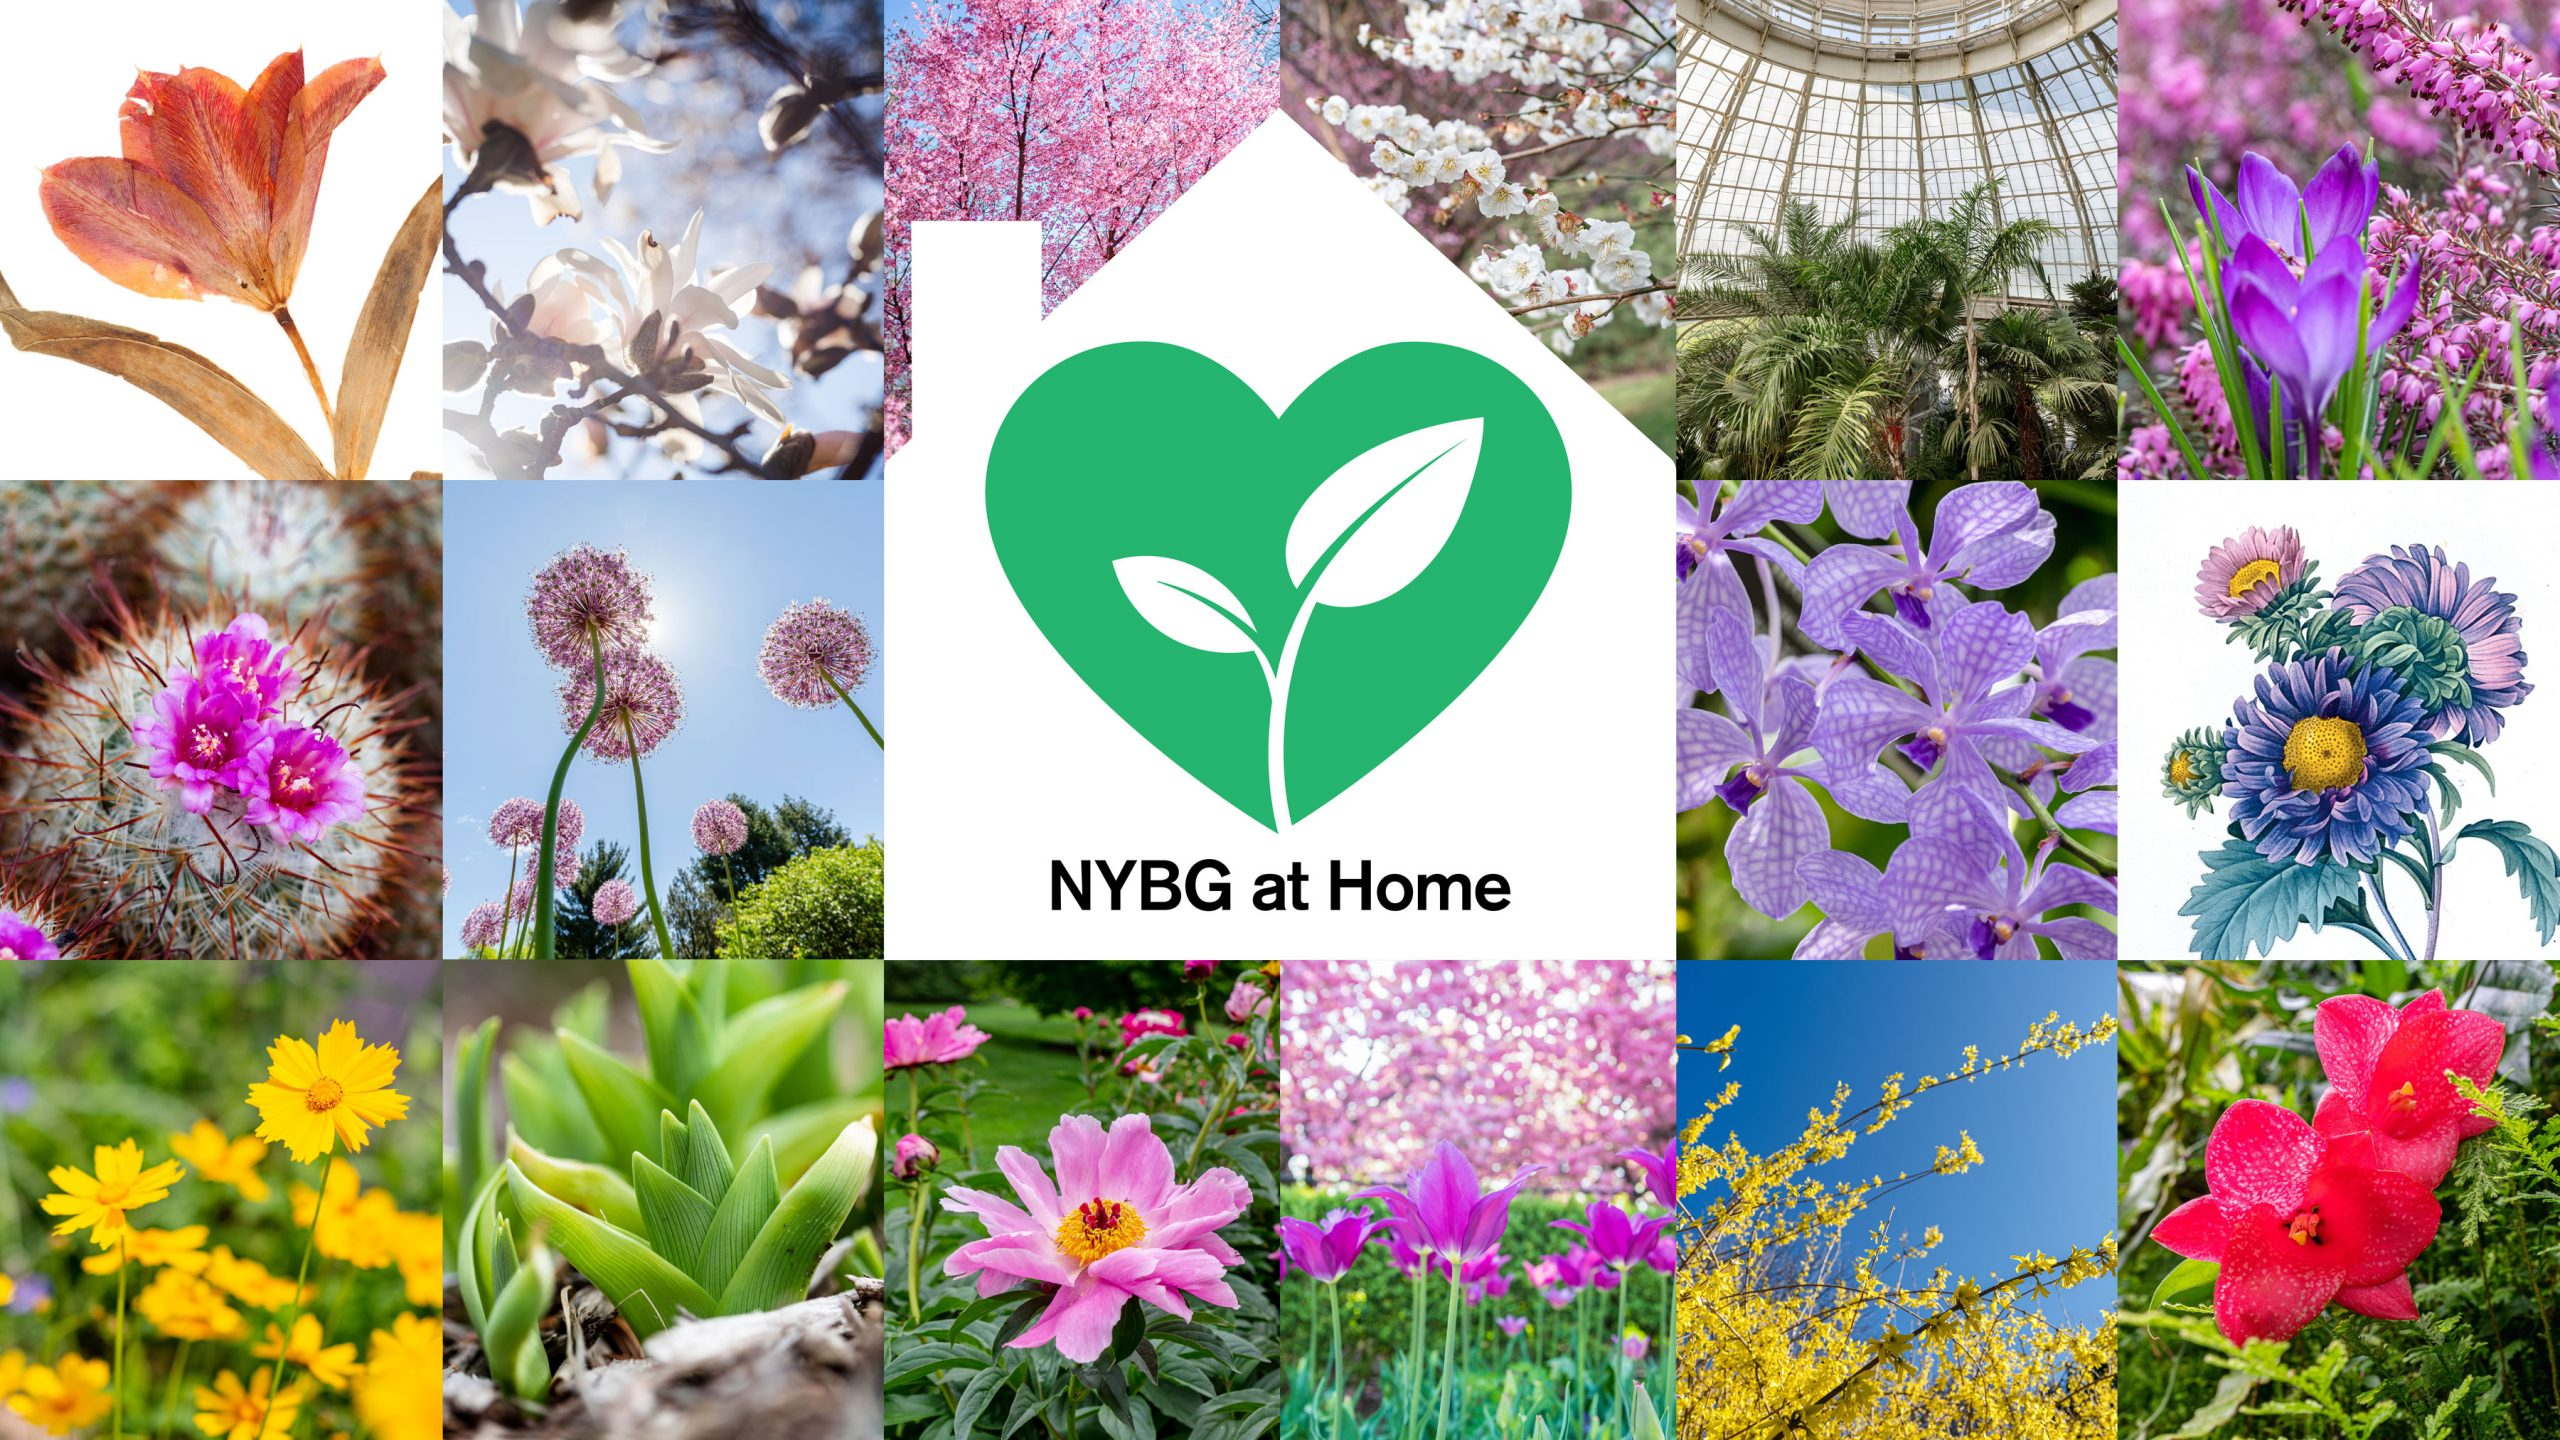 "A variety of tiled images of spring flowers with a white illustration of a home in the center, housing a green heart with a sprout growing inside, along with the words ""NYBG at Home."""